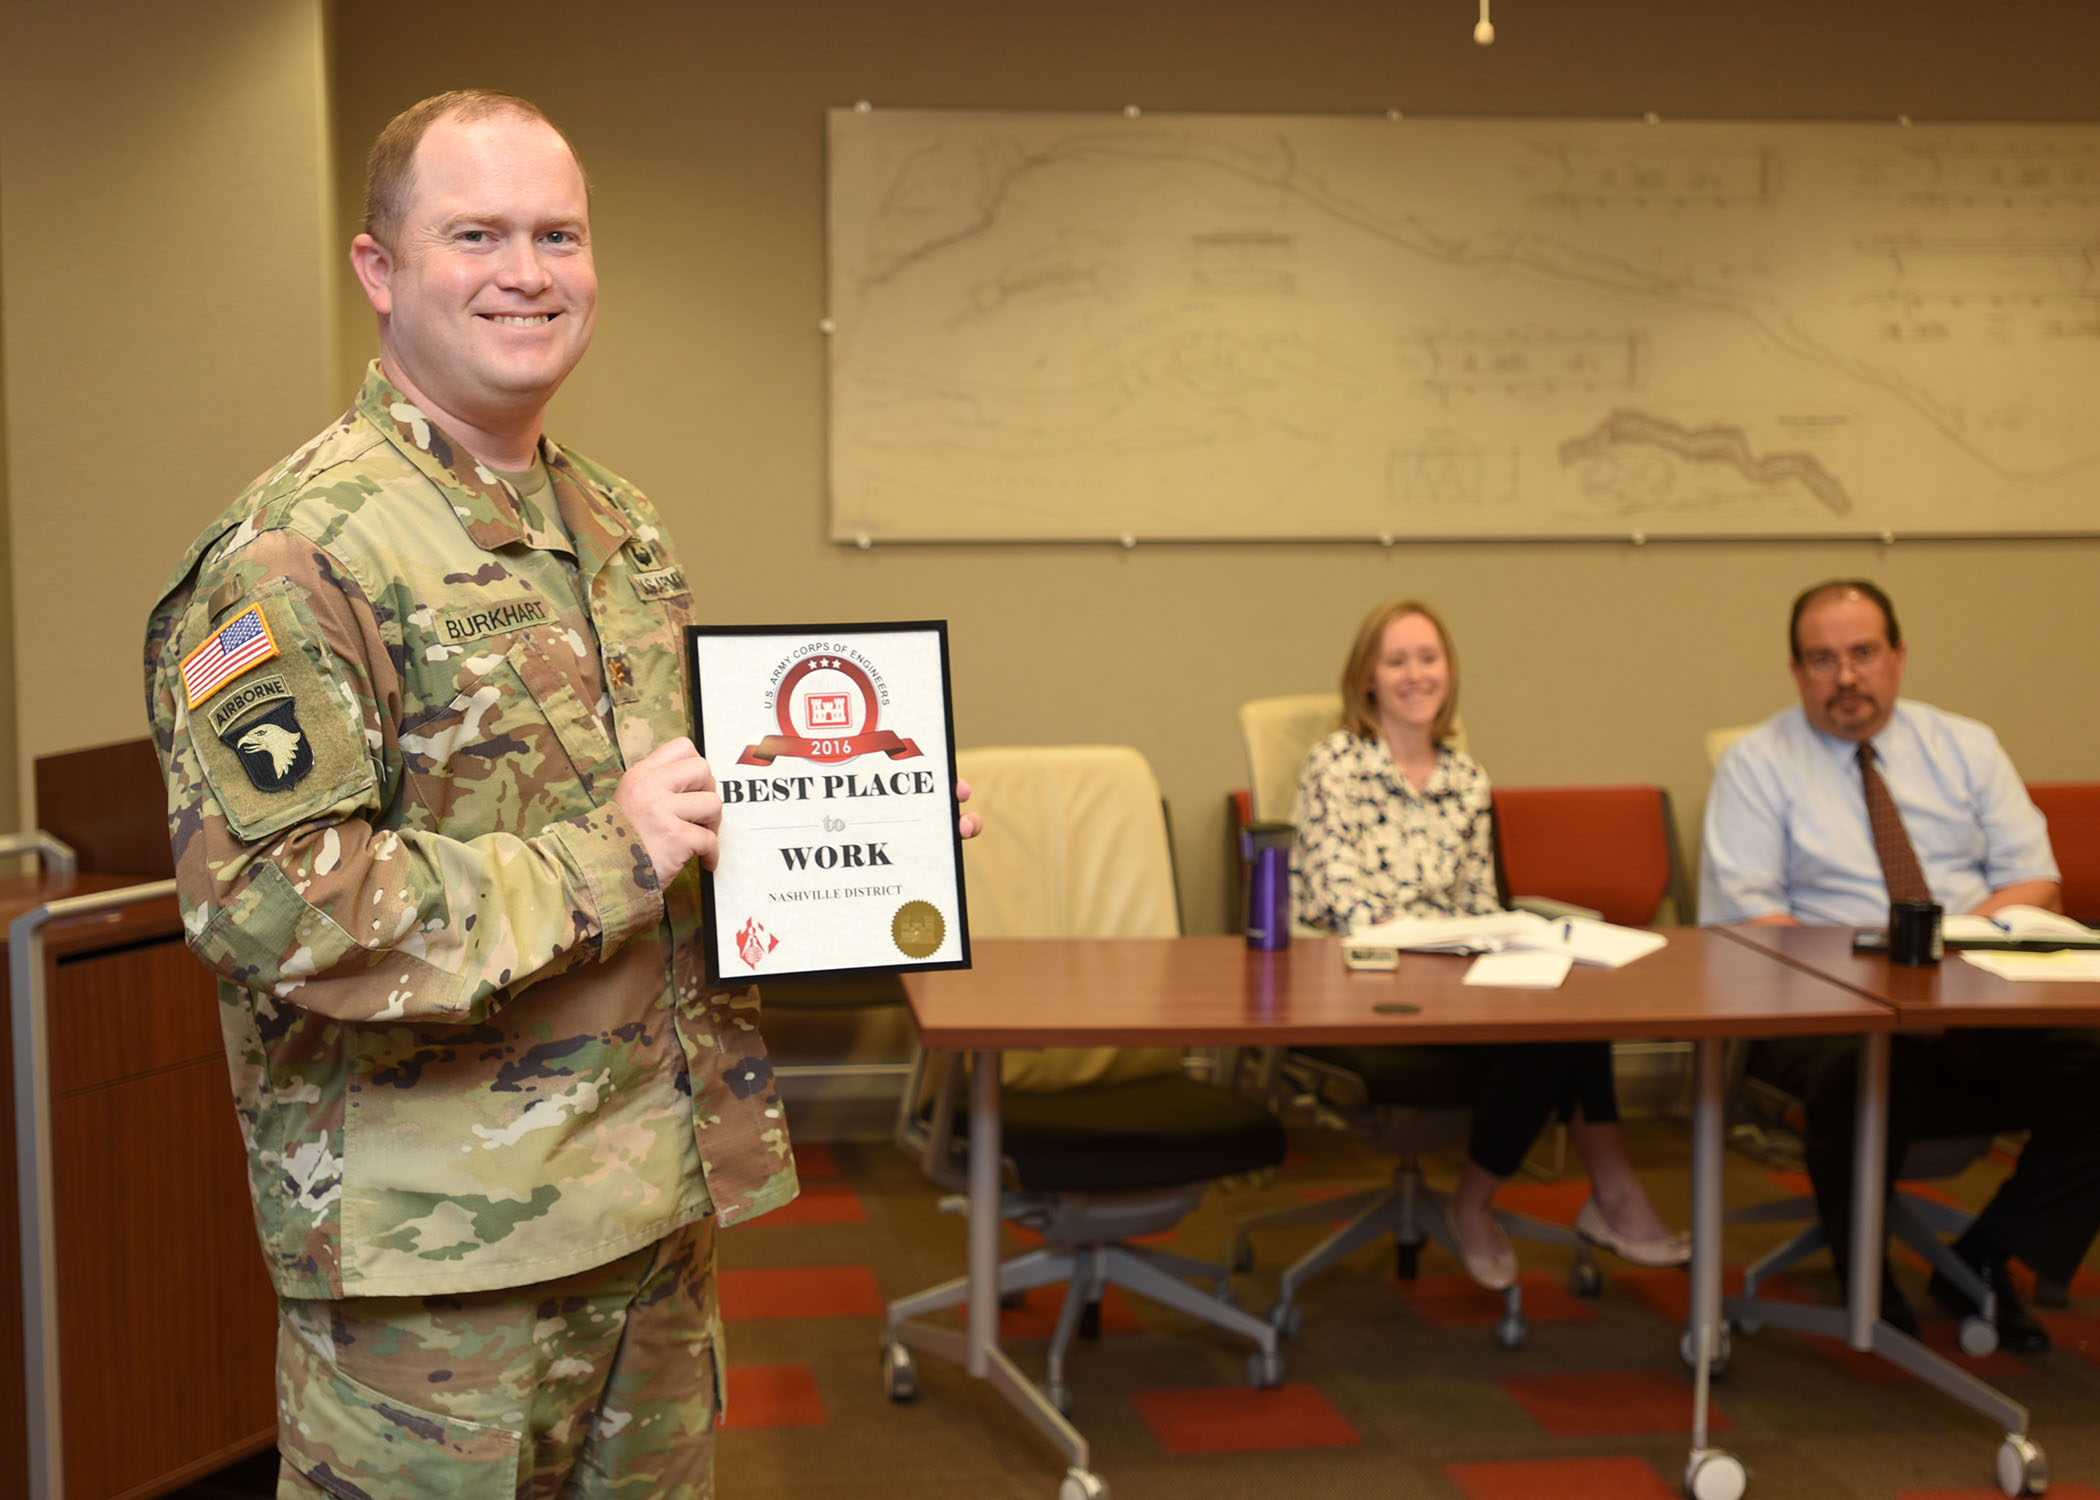 """Maj. Christopher Burkhart, U.S. Army Corps of Engineers Nashville District deputy commander, shows off the """"Best Place to Work in USACE"""" Award at the district's staff meeting Sept. 11, 2017 in Nashville, Tenn. The award was in the medium size agency category based on employee responses in the 2016 Federal Employee Viewpoint Survey. Nine awards were presented by the U.S. Army Corps of Engineers Headquarters to organizations in this category. (Photo by Lee Roberts)"""